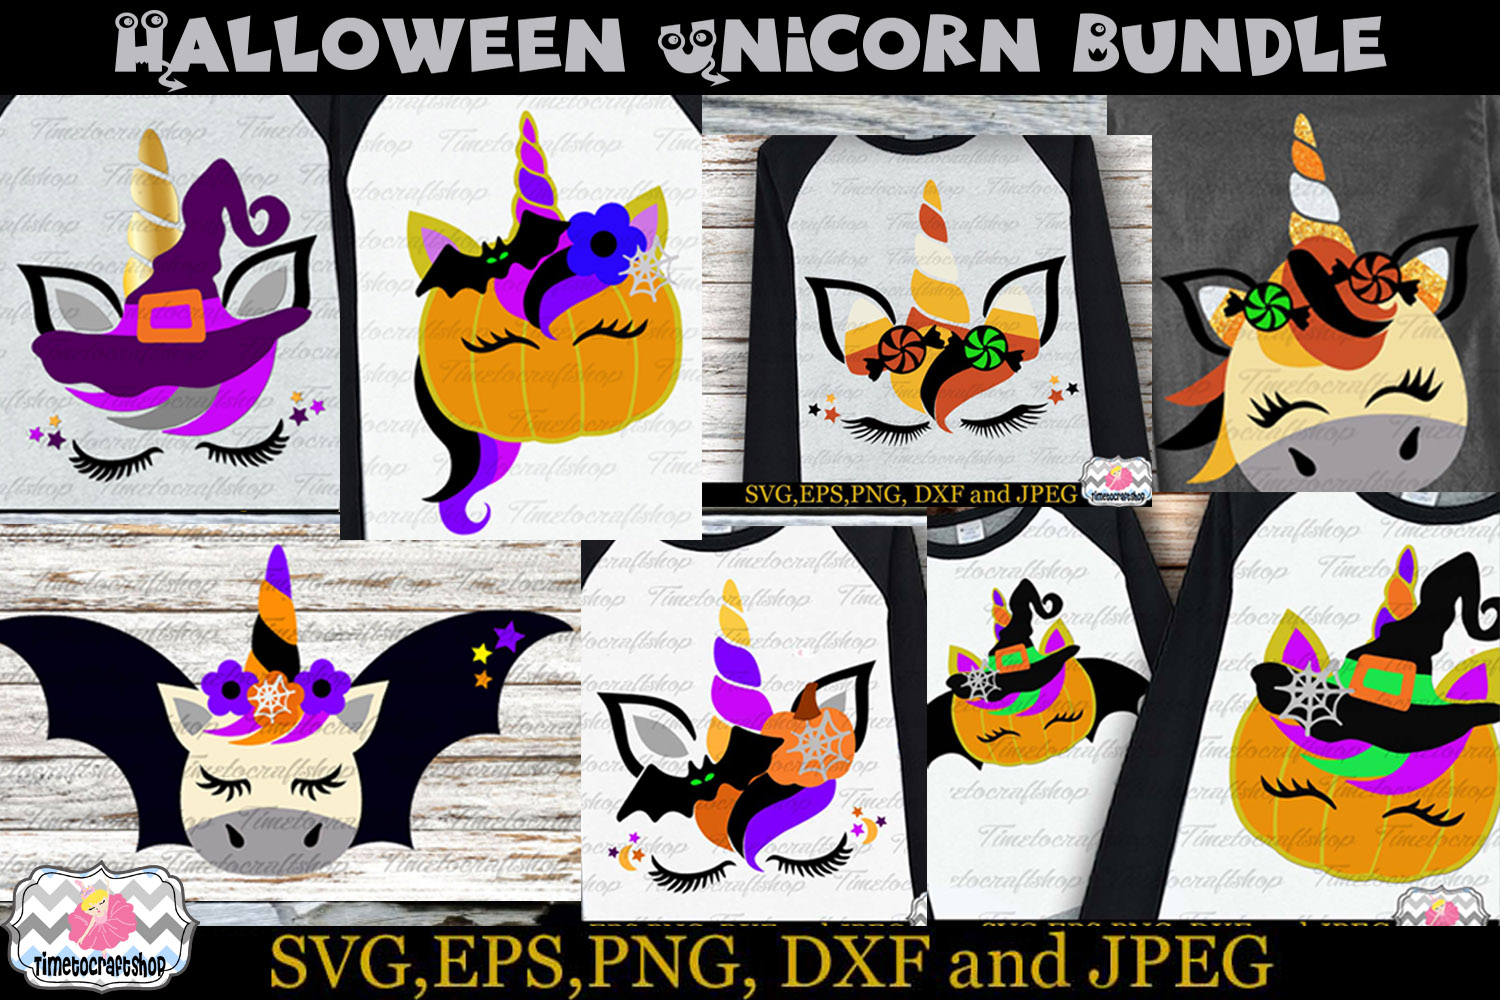 SVG, Eps, Dxf & Png Files For Halloween Unicorn Bundle example image 1